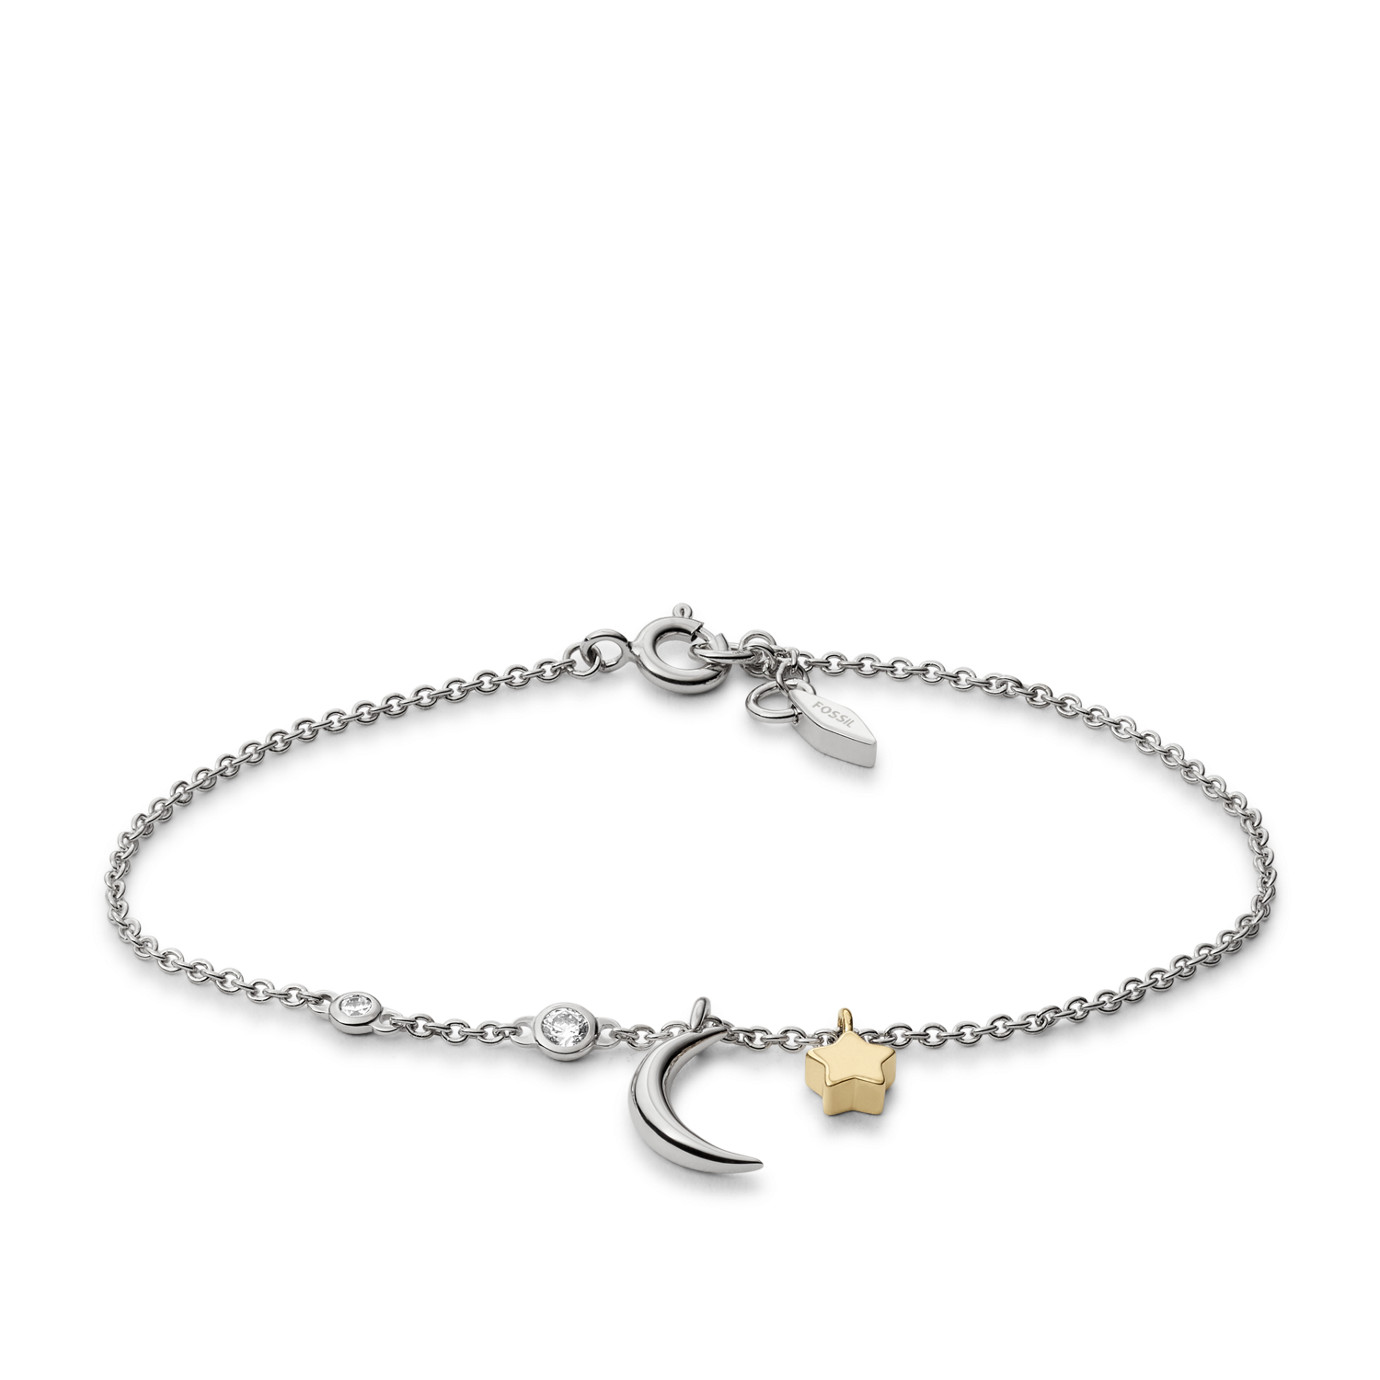 Sterling Silver Star and Crescent Moon Bracelet